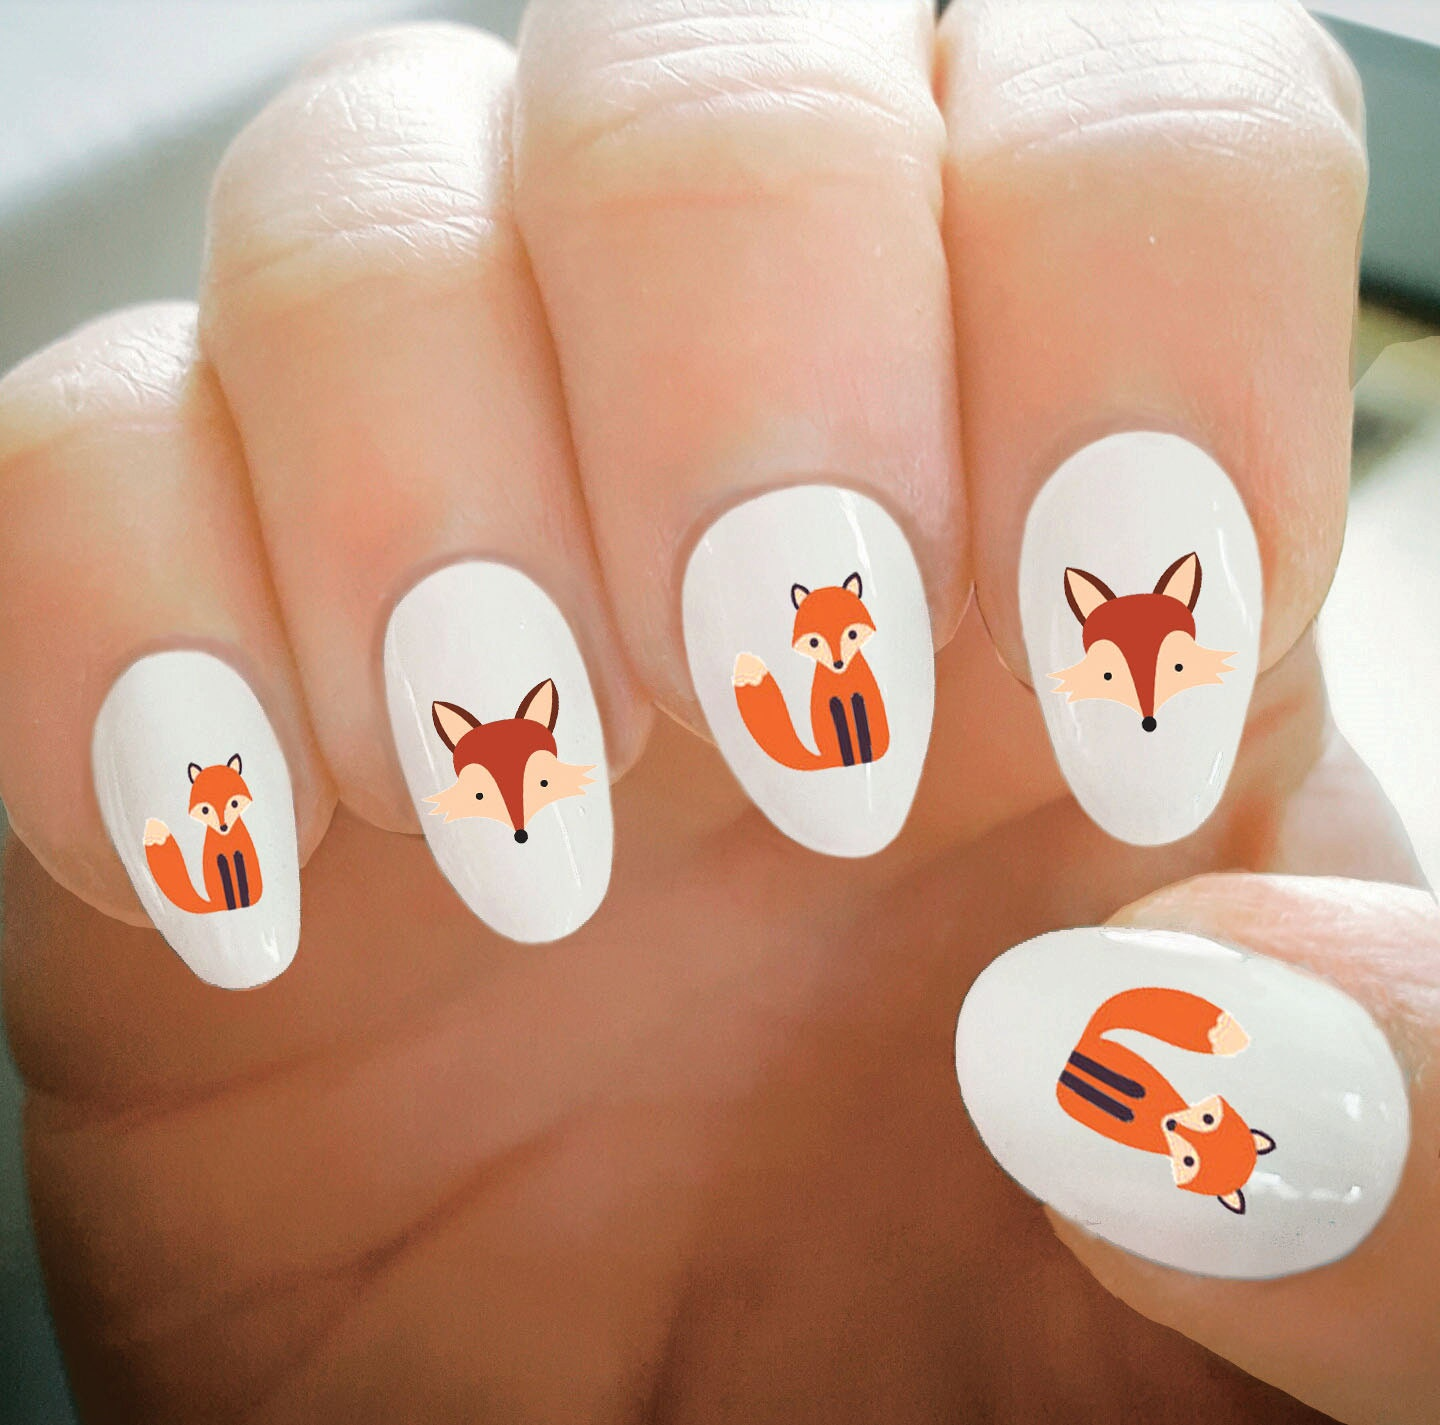 Nail Decals, Fox Nail Decals, Water Transfer Nail Decals,Nail Tattoo ...